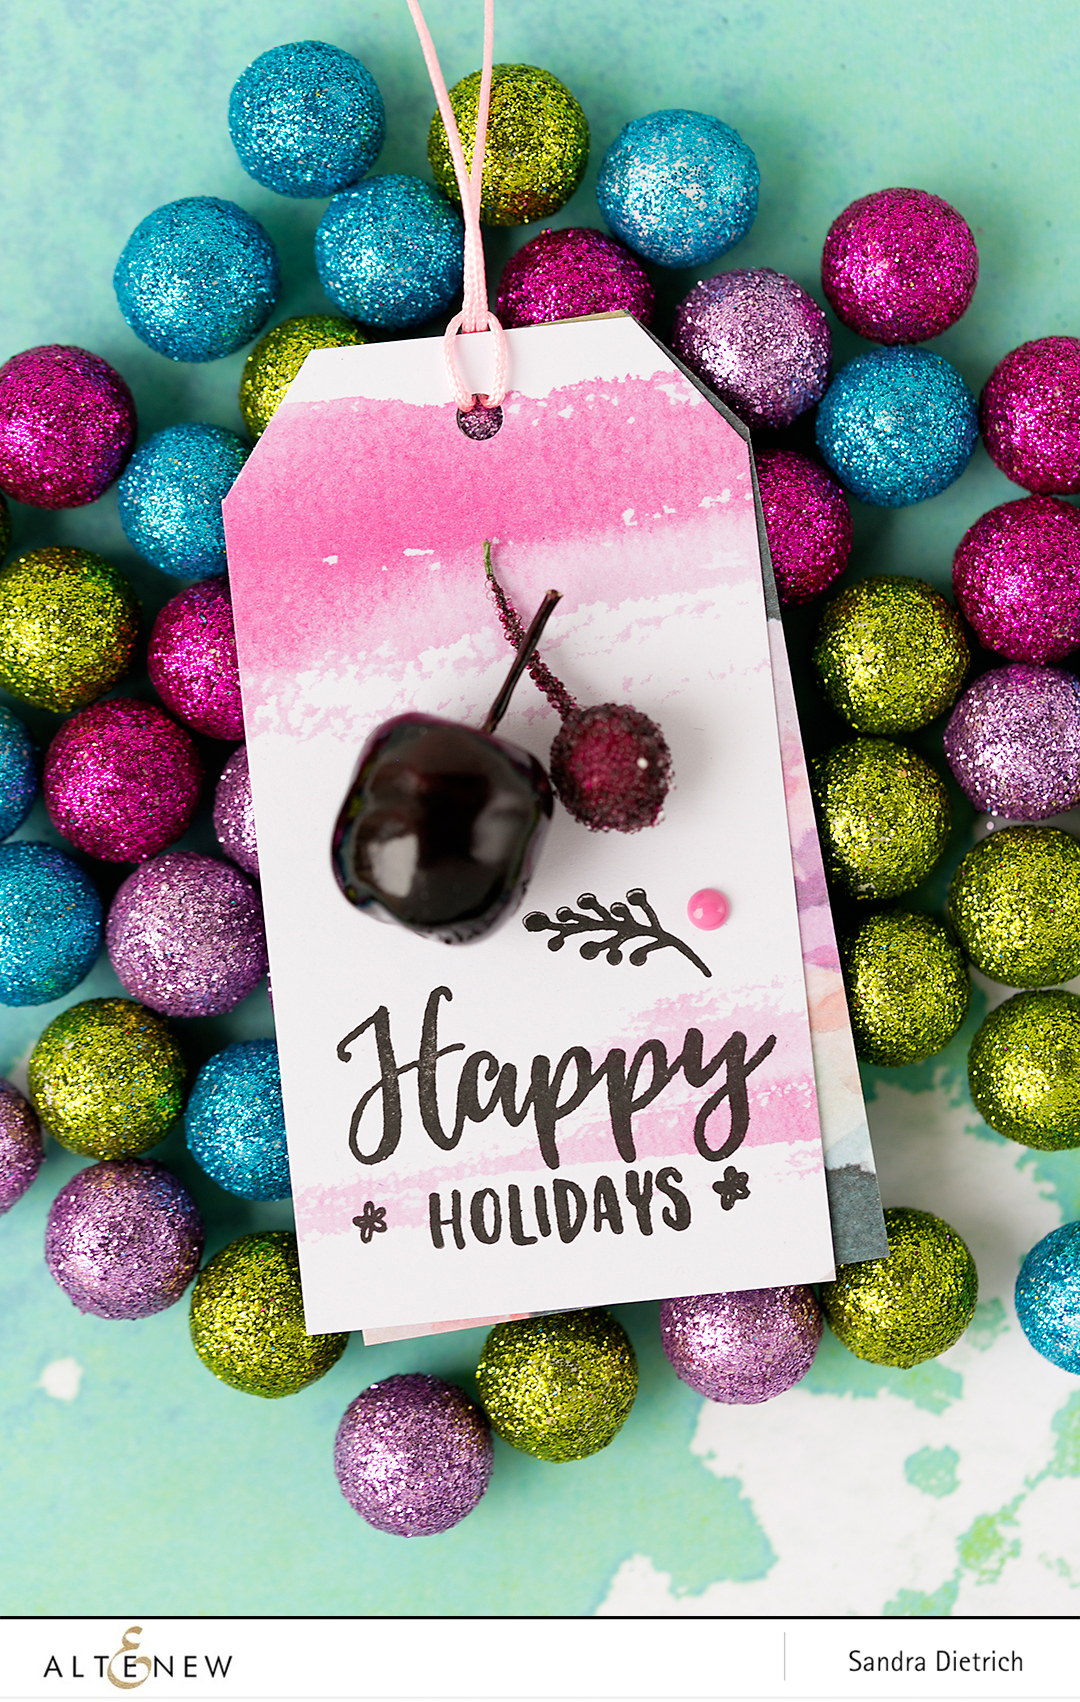 Festive Tags for Christmas @SandraDietrich for @Altenew